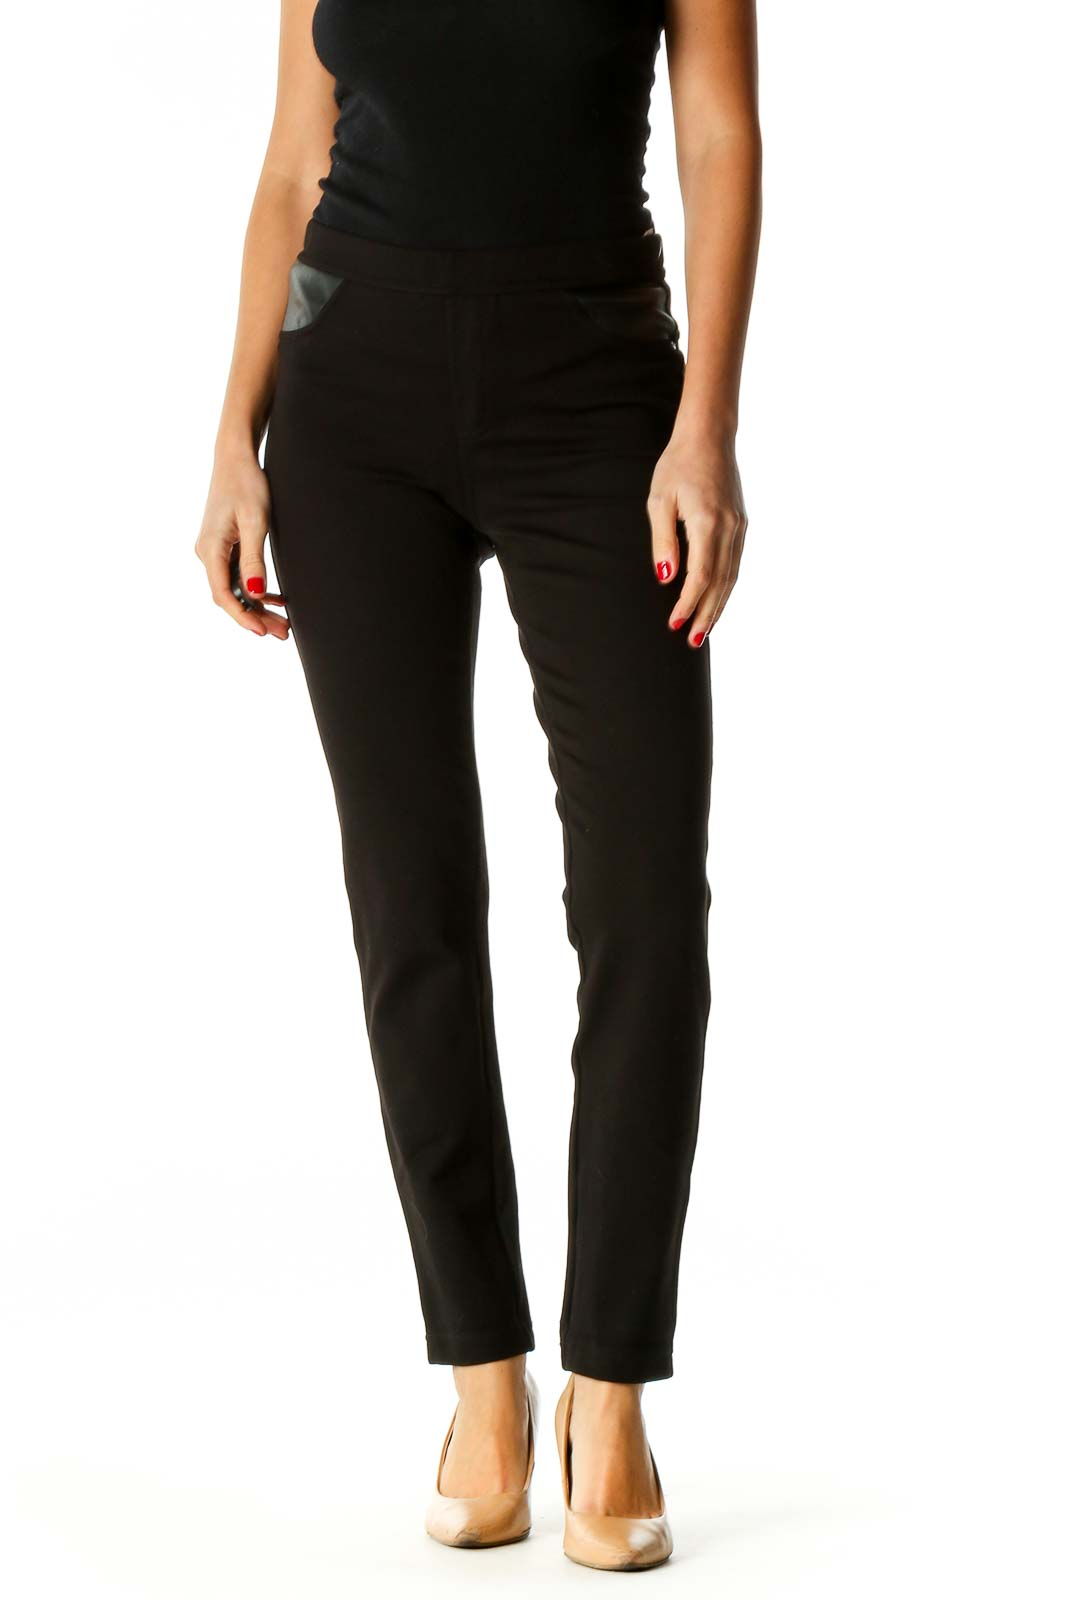 Black Solid Chic Leggings Front